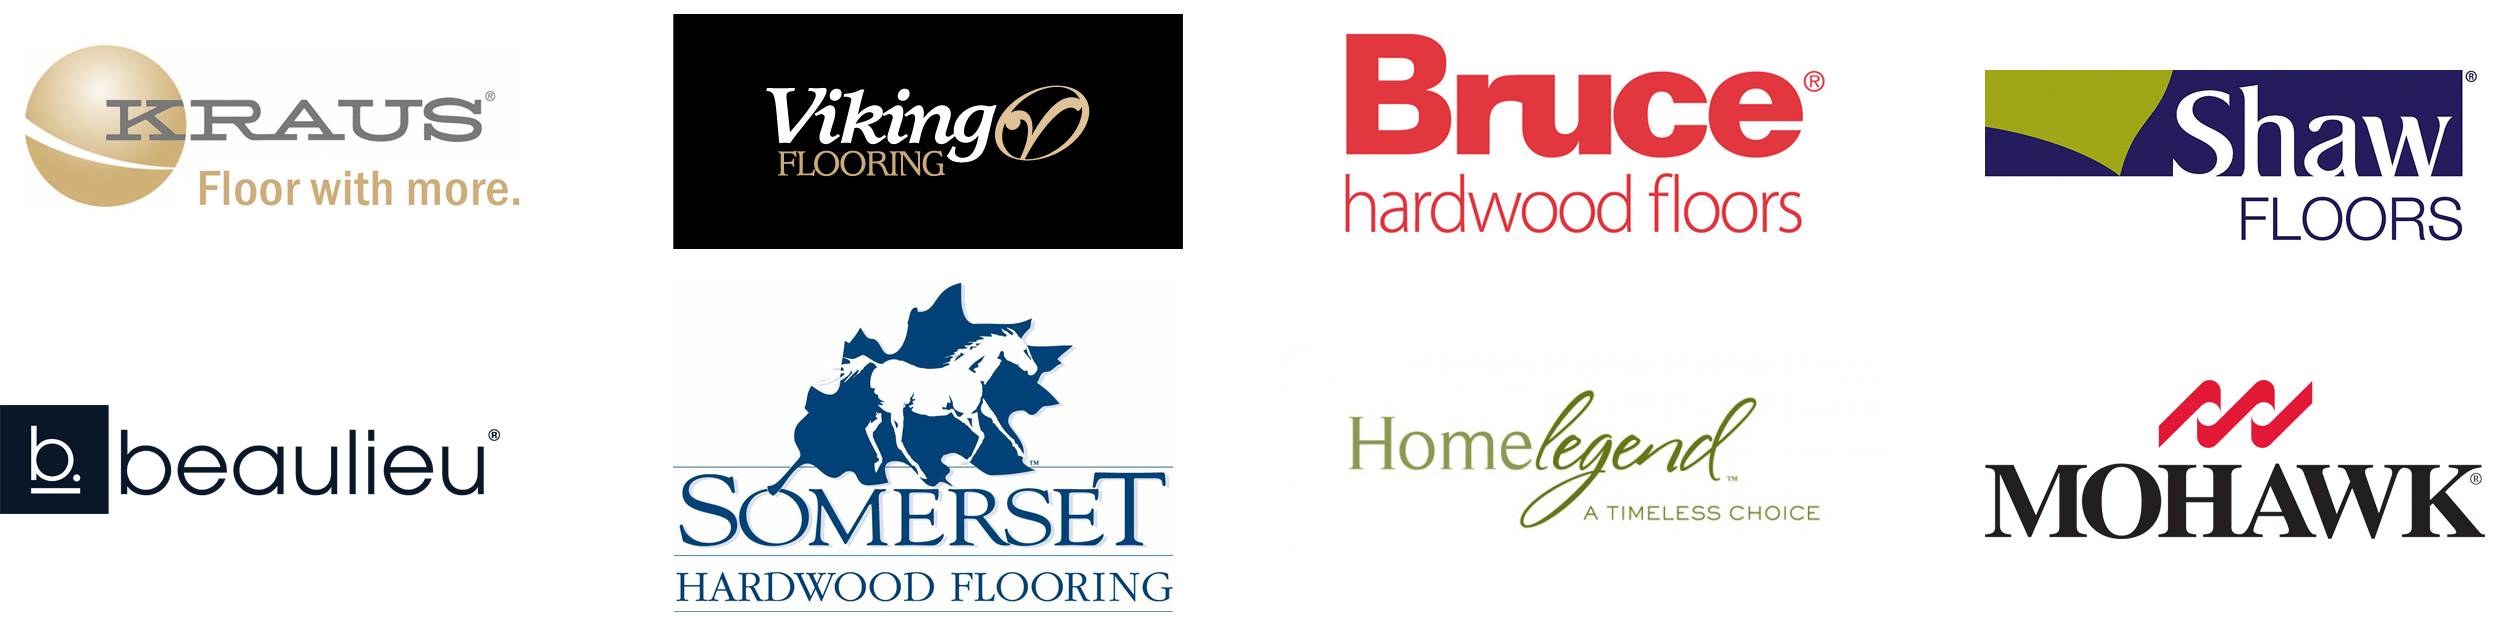 Chicago Hardwood Flooring chicago winters and your wood floor Chicago Hardwood Flooring Companies